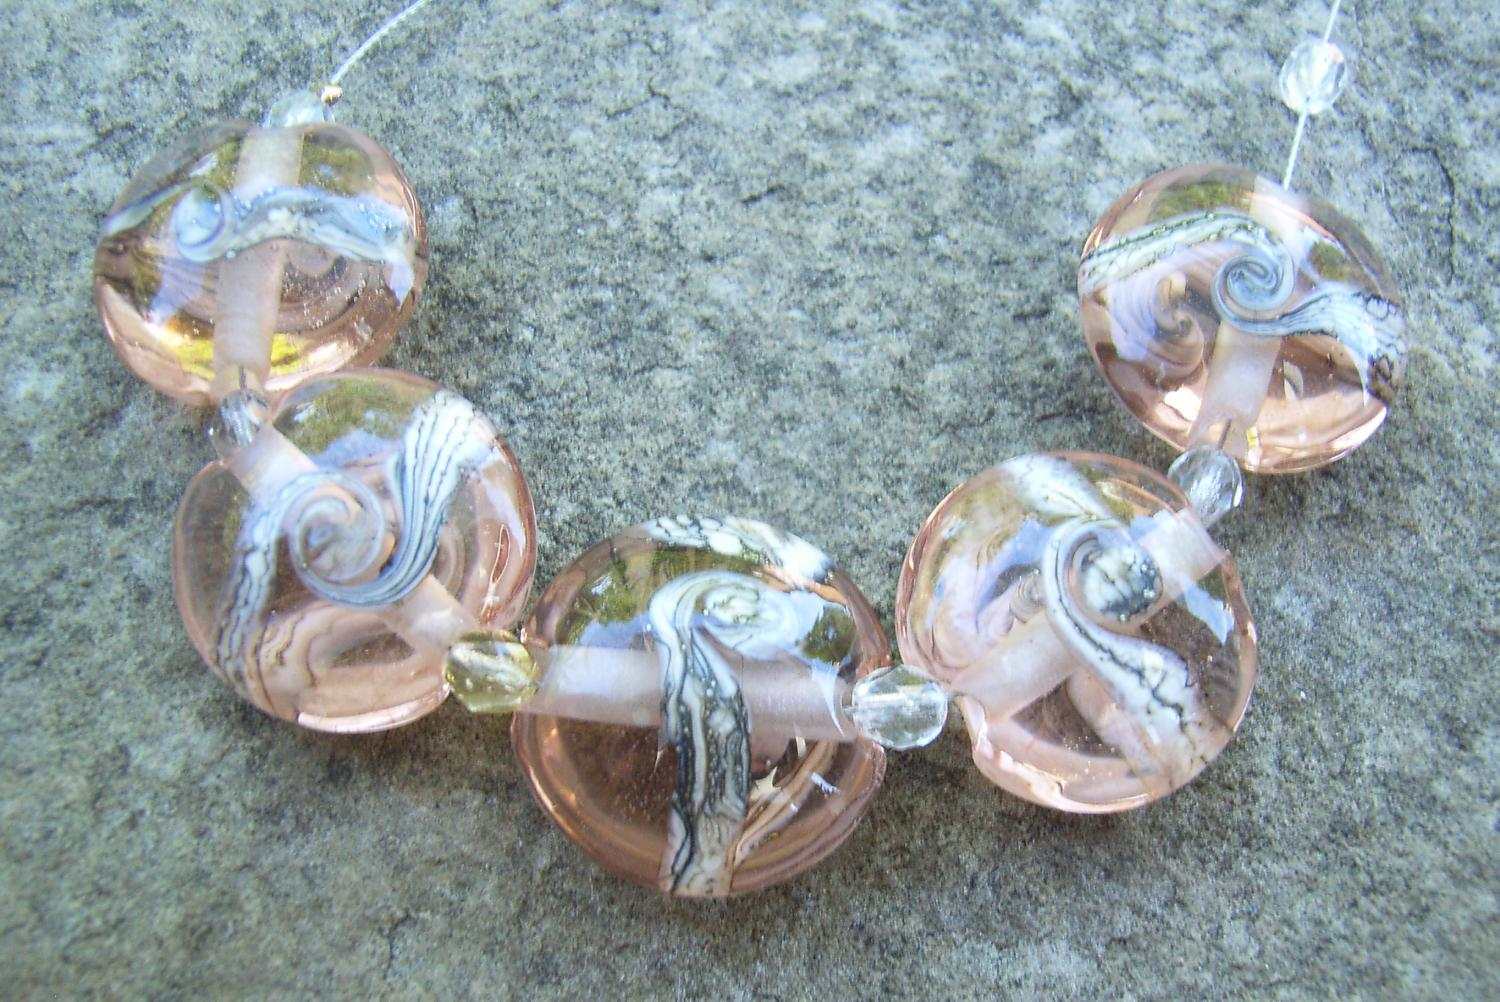 Silvered Ivory Swirl 18mm Peach Lentil Handmade Artisan Glass Lampwork Beads - By the Bead, (Made to Order)